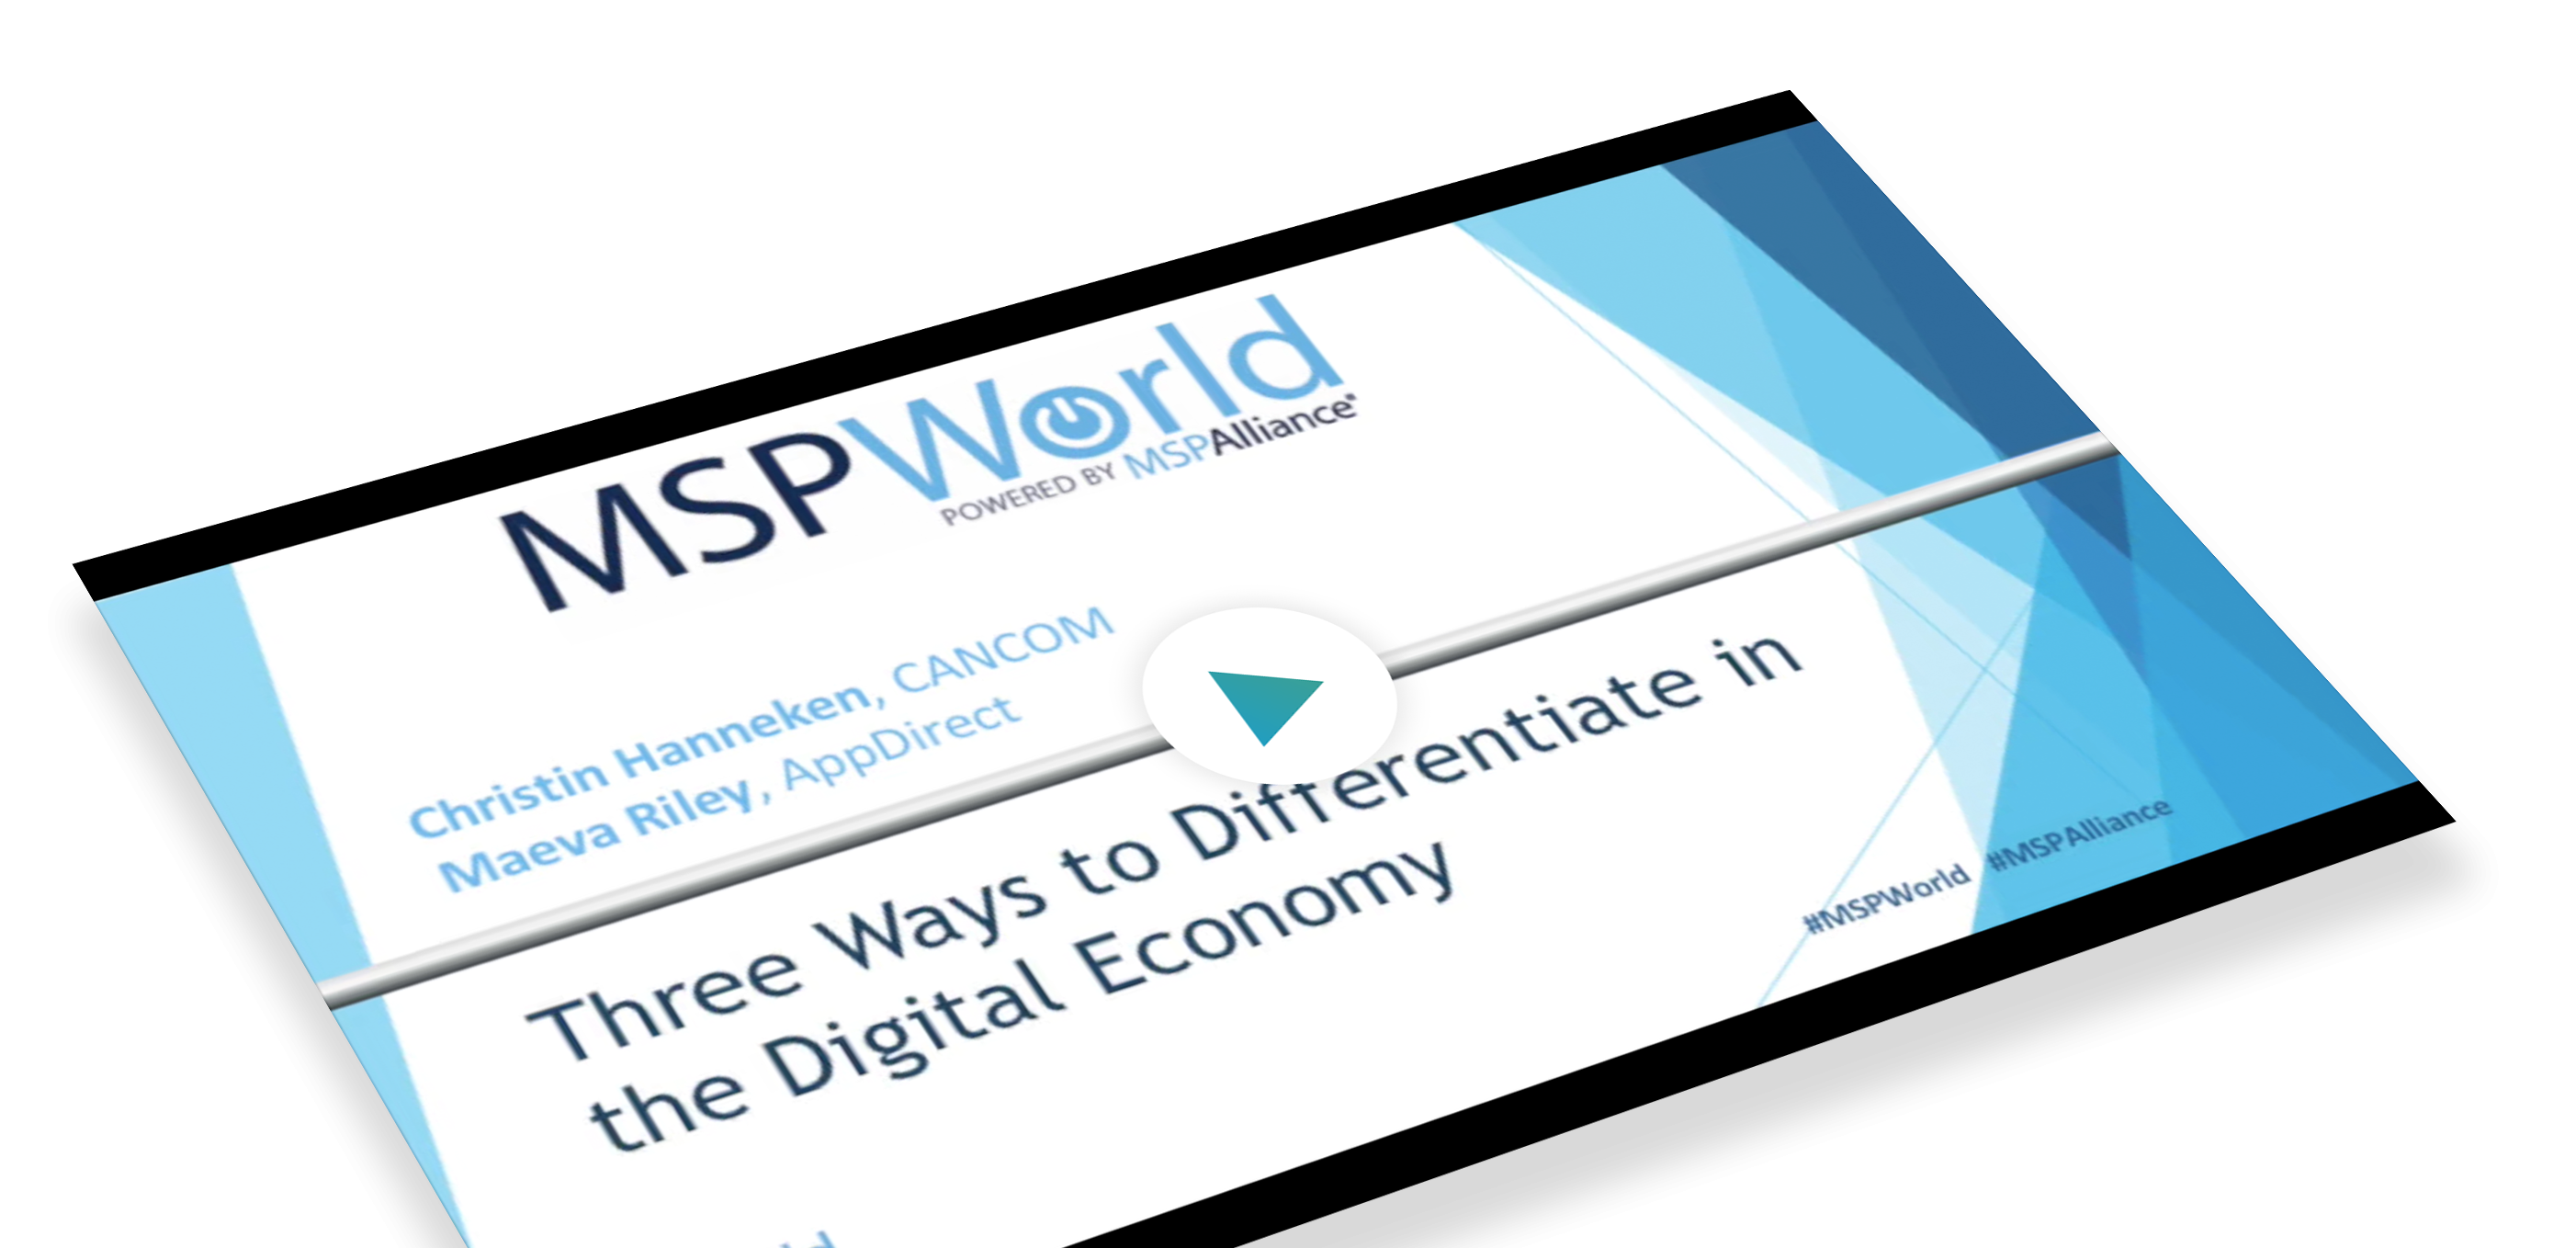 Three Ways to Differentiate in the Digital Economy